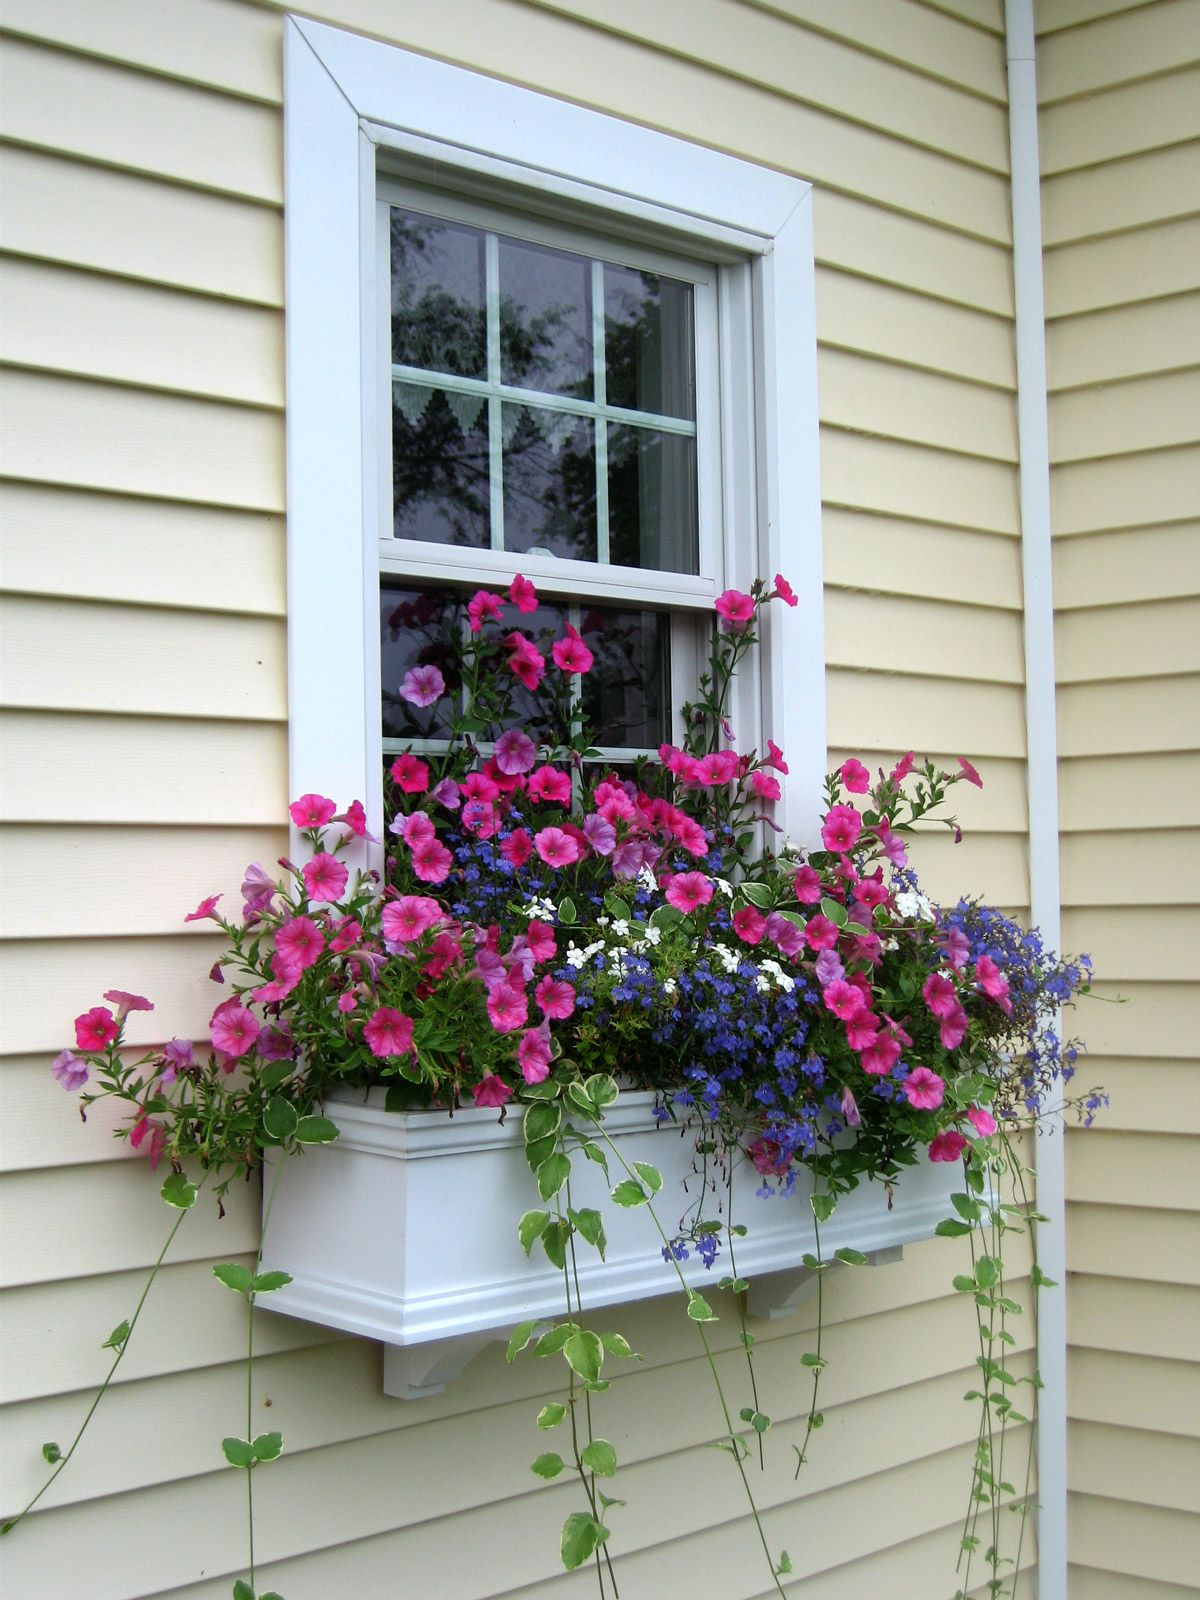 window box contest entry windowbox window box contest. Black Bedroom Furniture Sets. Home Design Ideas